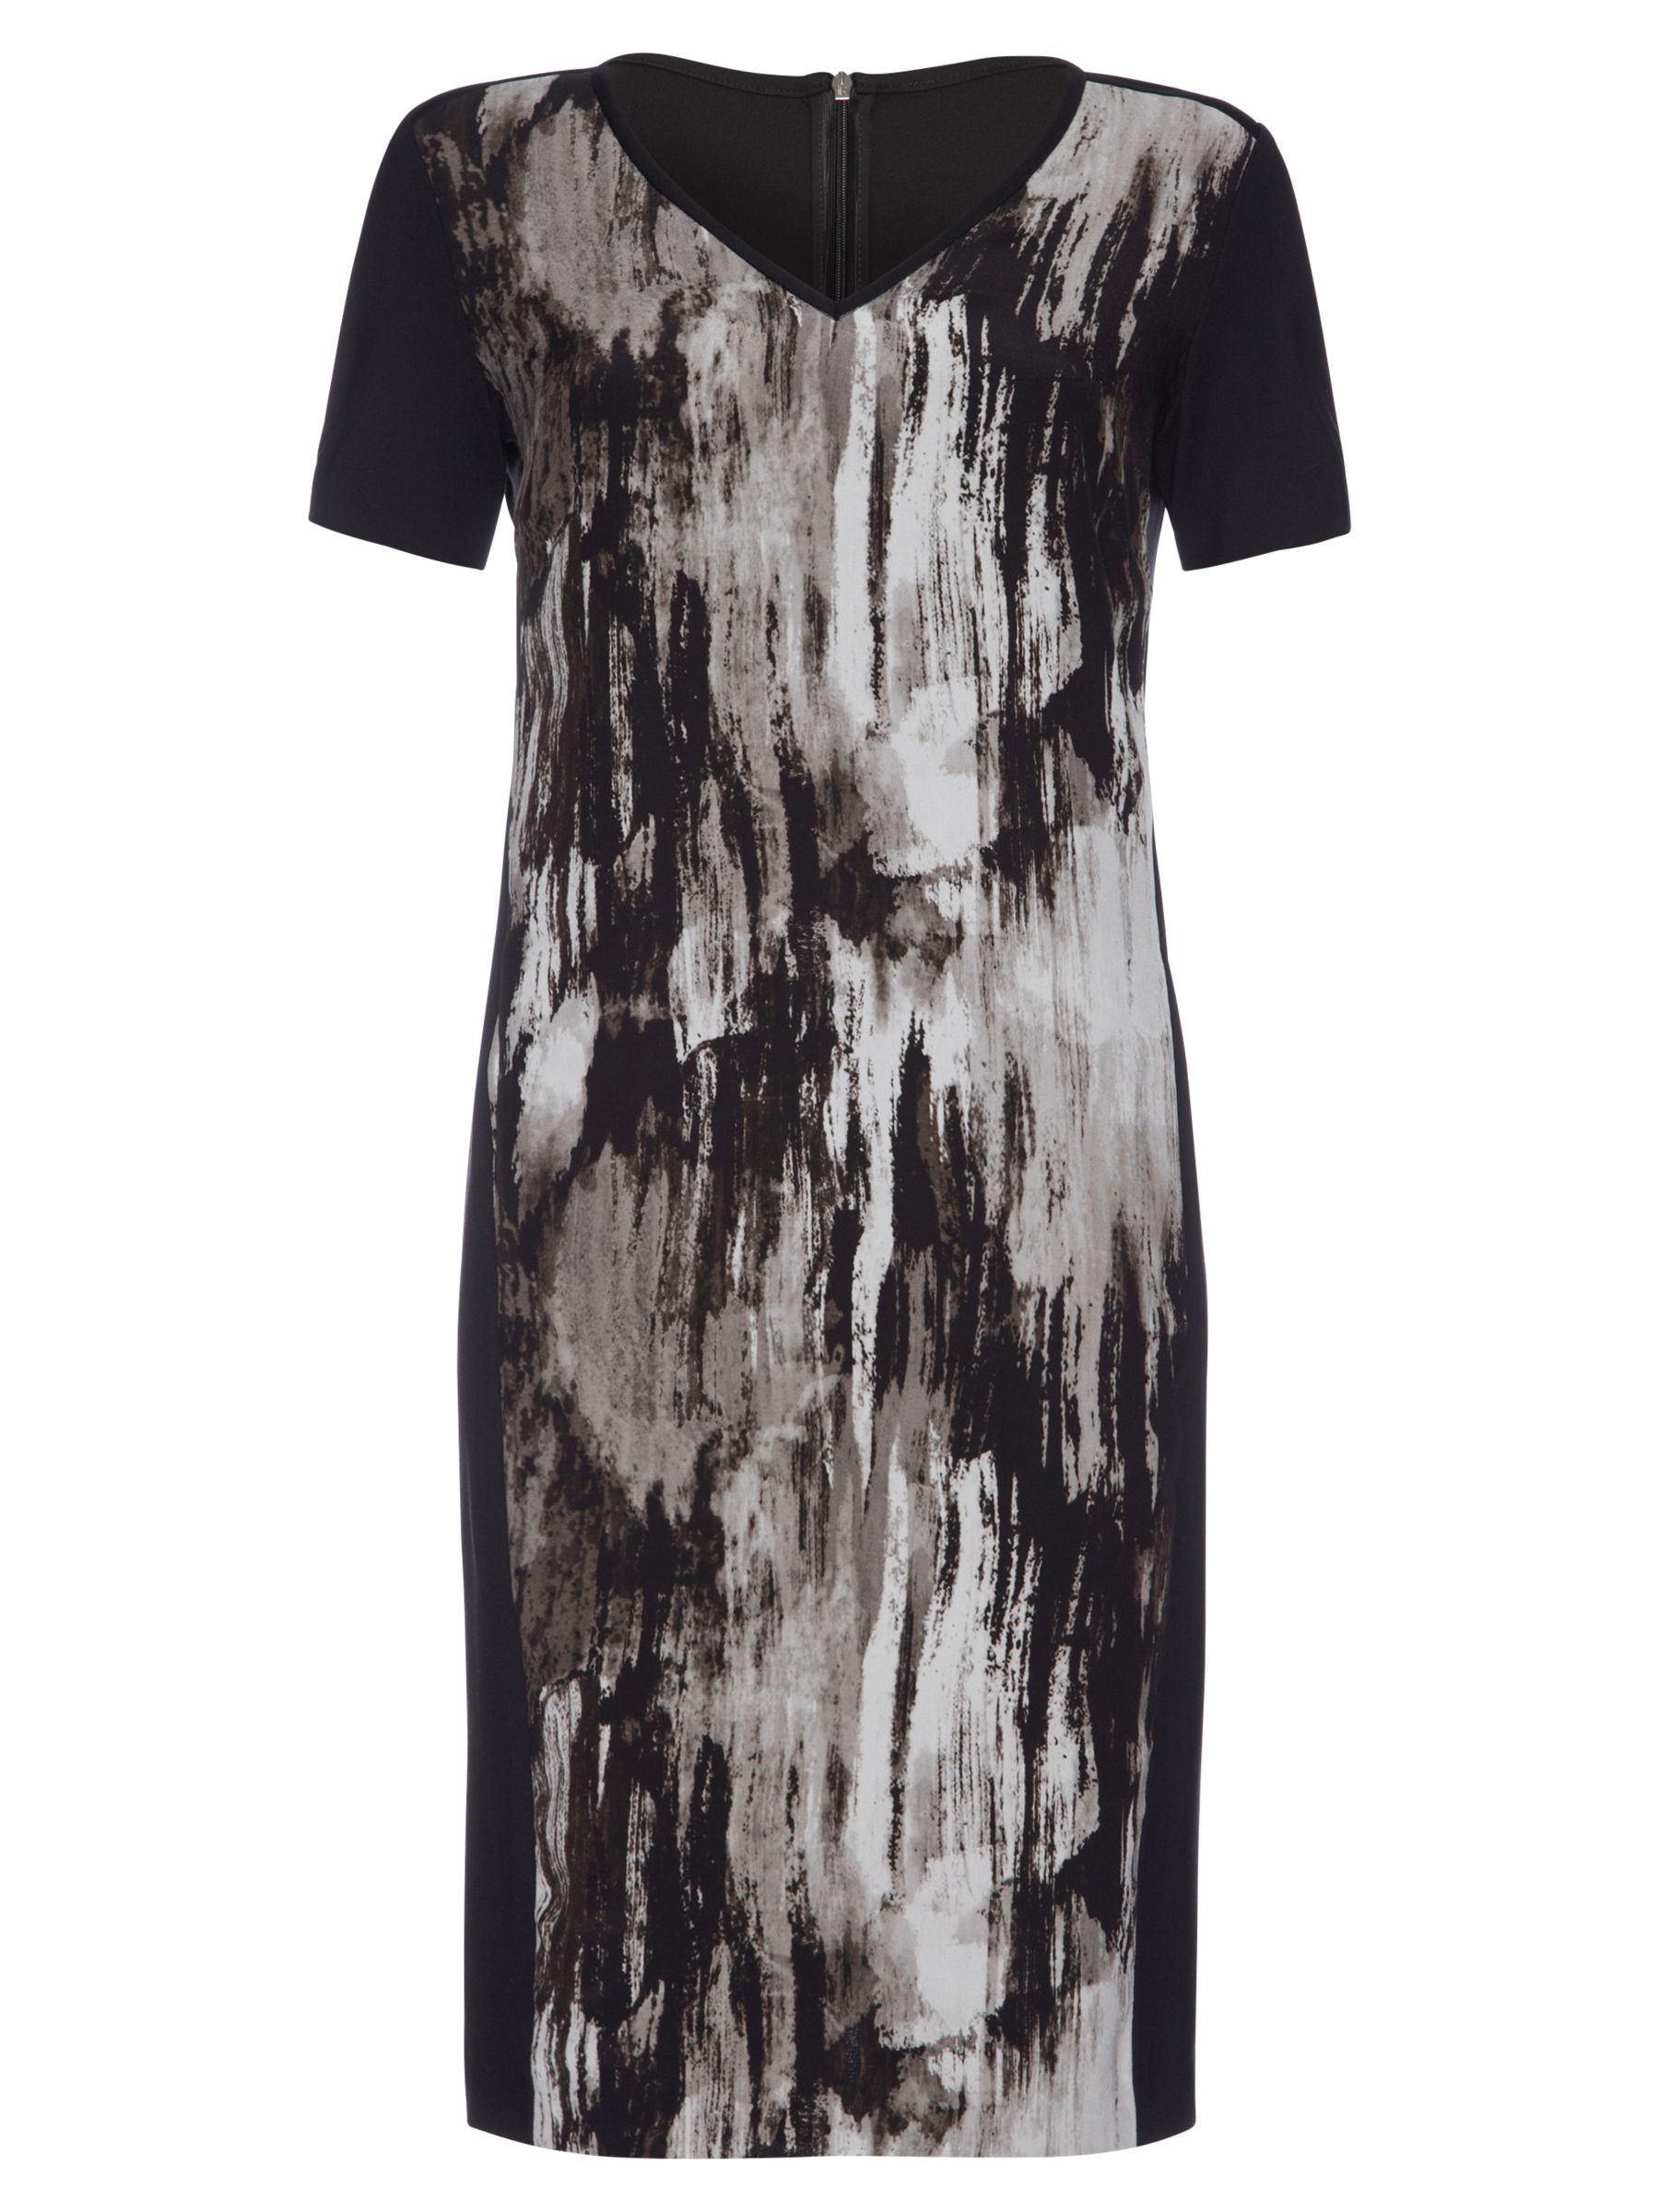 damsel in a dress flo print dress multi print, damsel, dress, flo, print, multi, damsel in a dress, clearance, womenswear offers, womens dresses offers, women, womens dresses, edition magazine, art show, inactive womenswear, ss14 trends, special offers, global style, 1141476